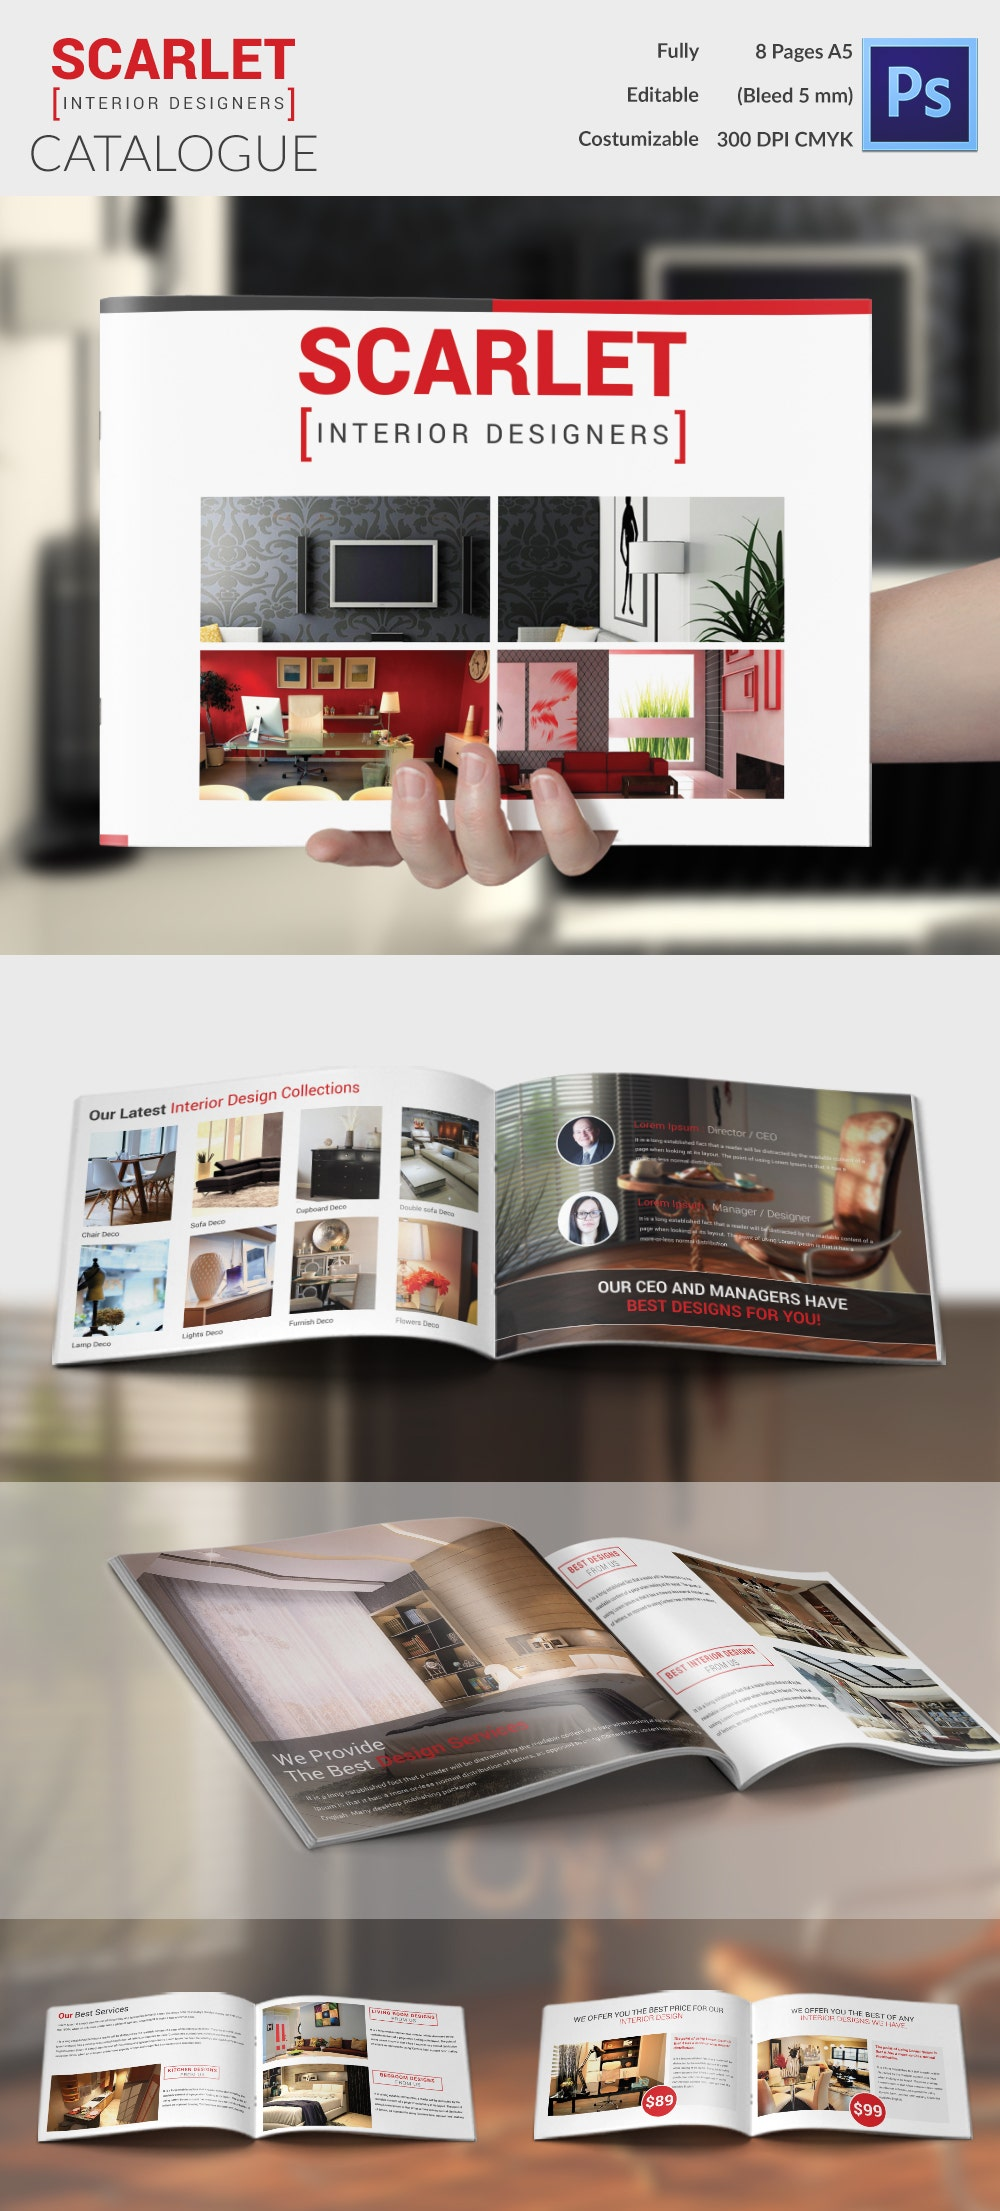 Attractive Interior Design Brochure In Catalog Style